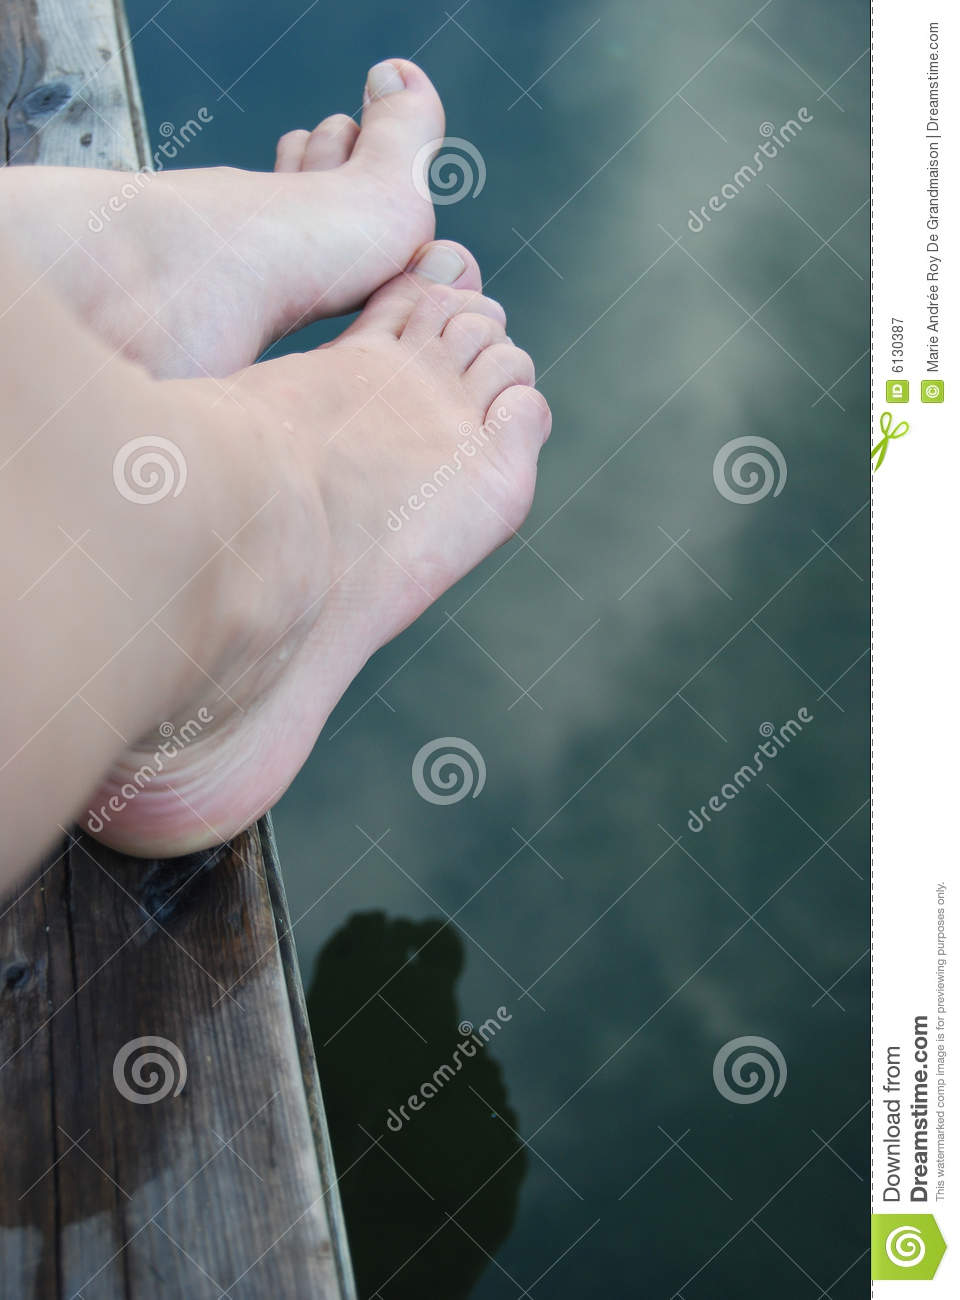 Feet by edge of water